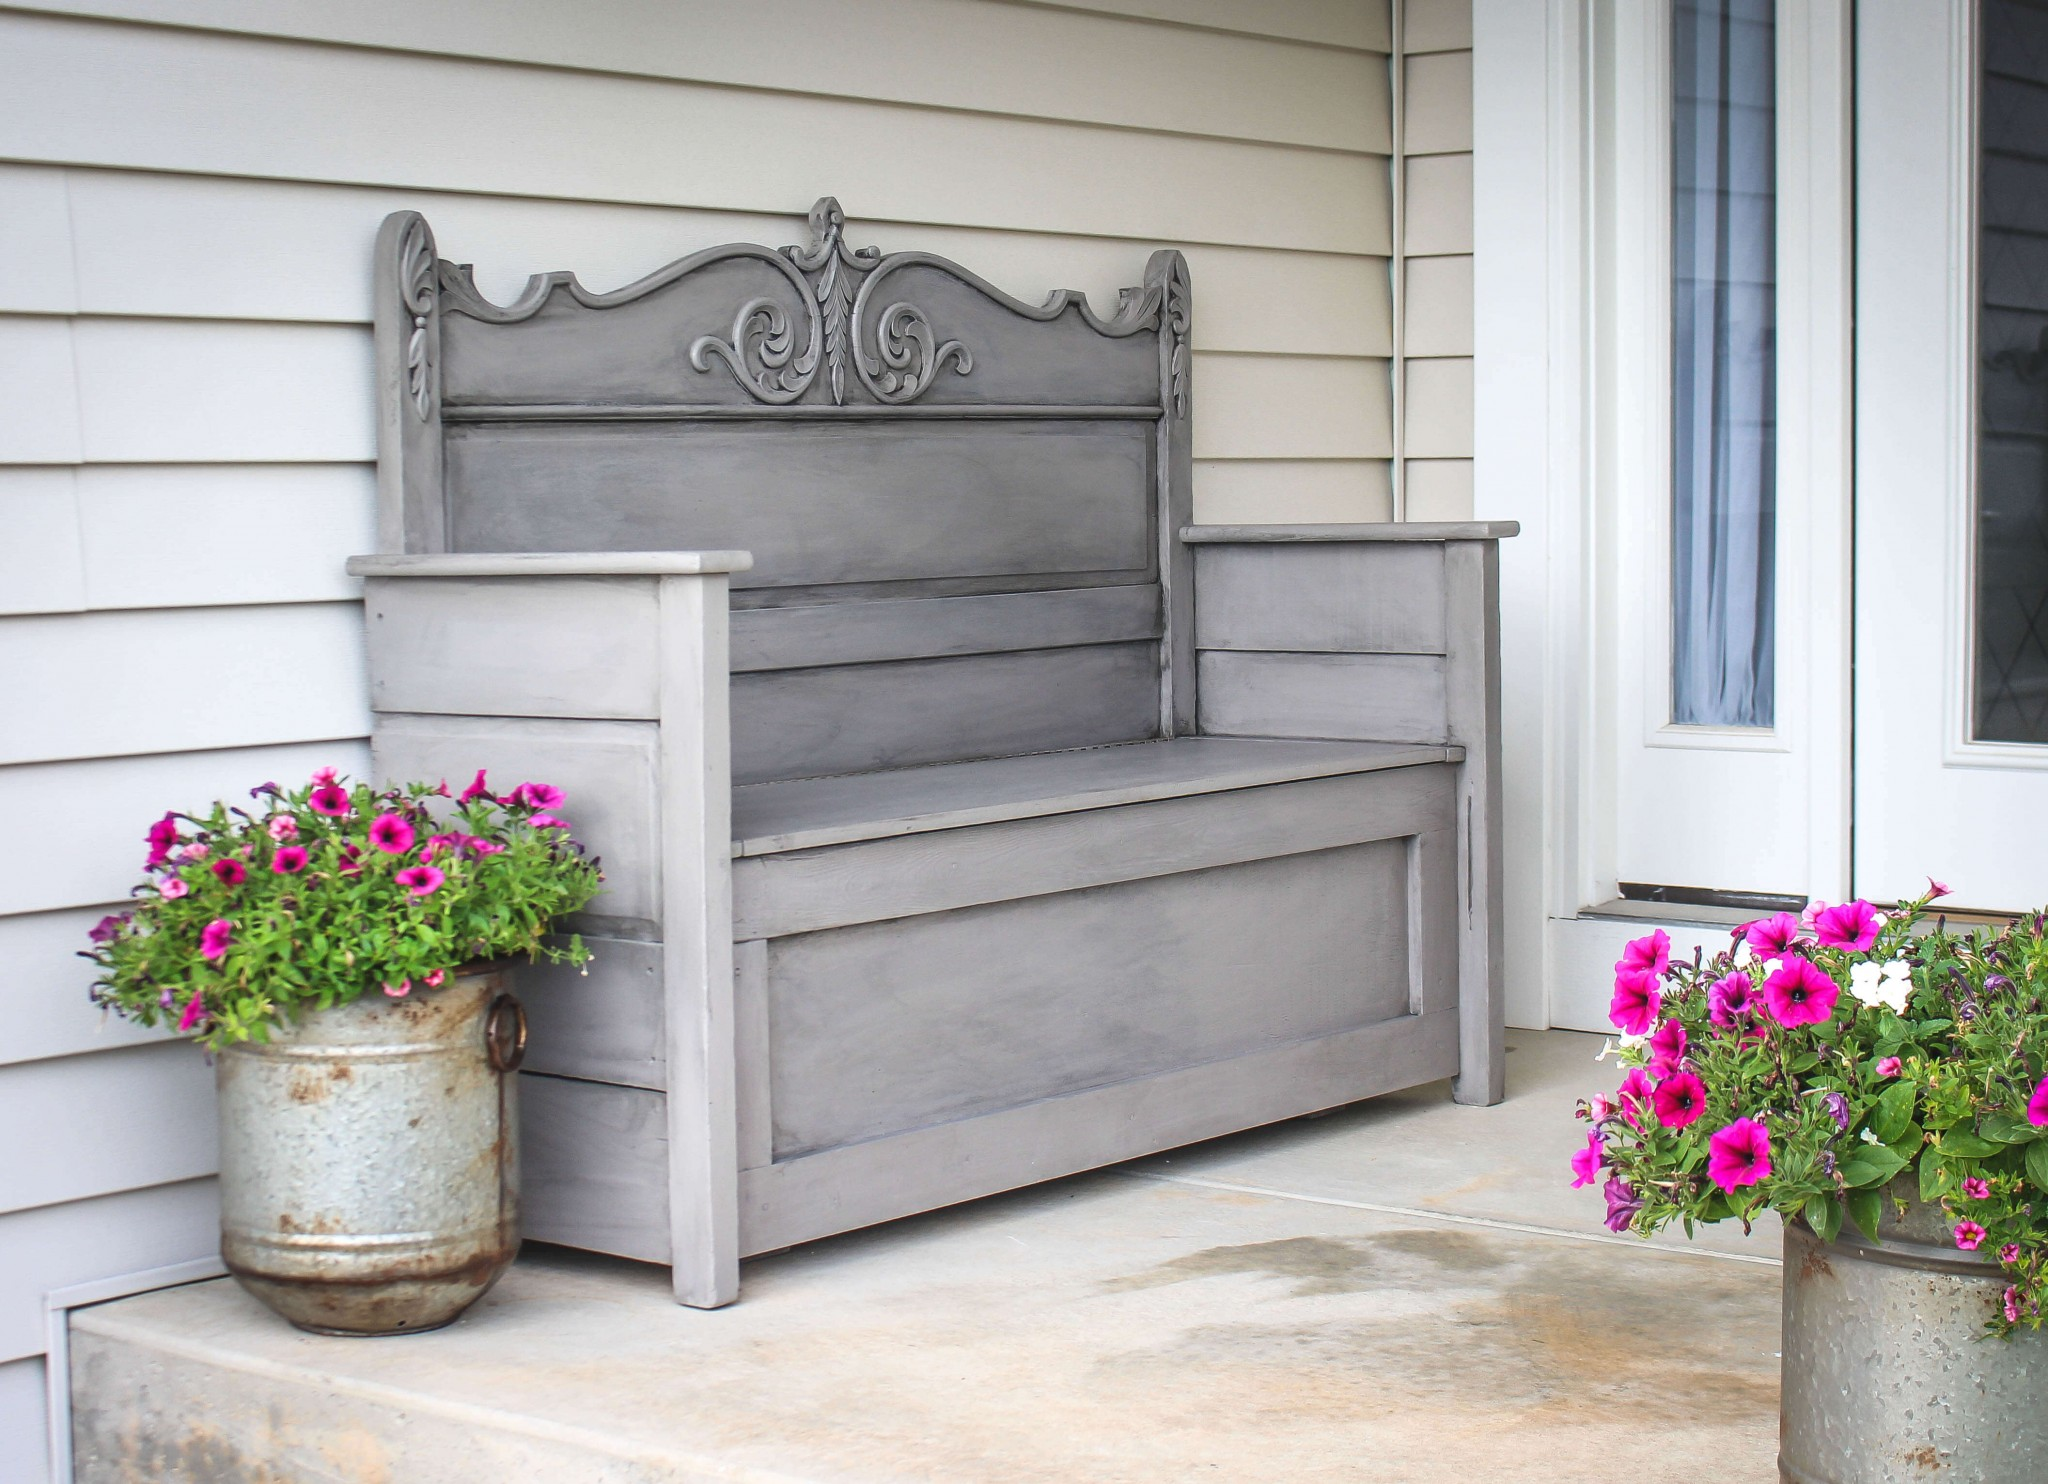 Outdoor DIY Bench Ideas: Antique Up-Cycled Head-Board Bench